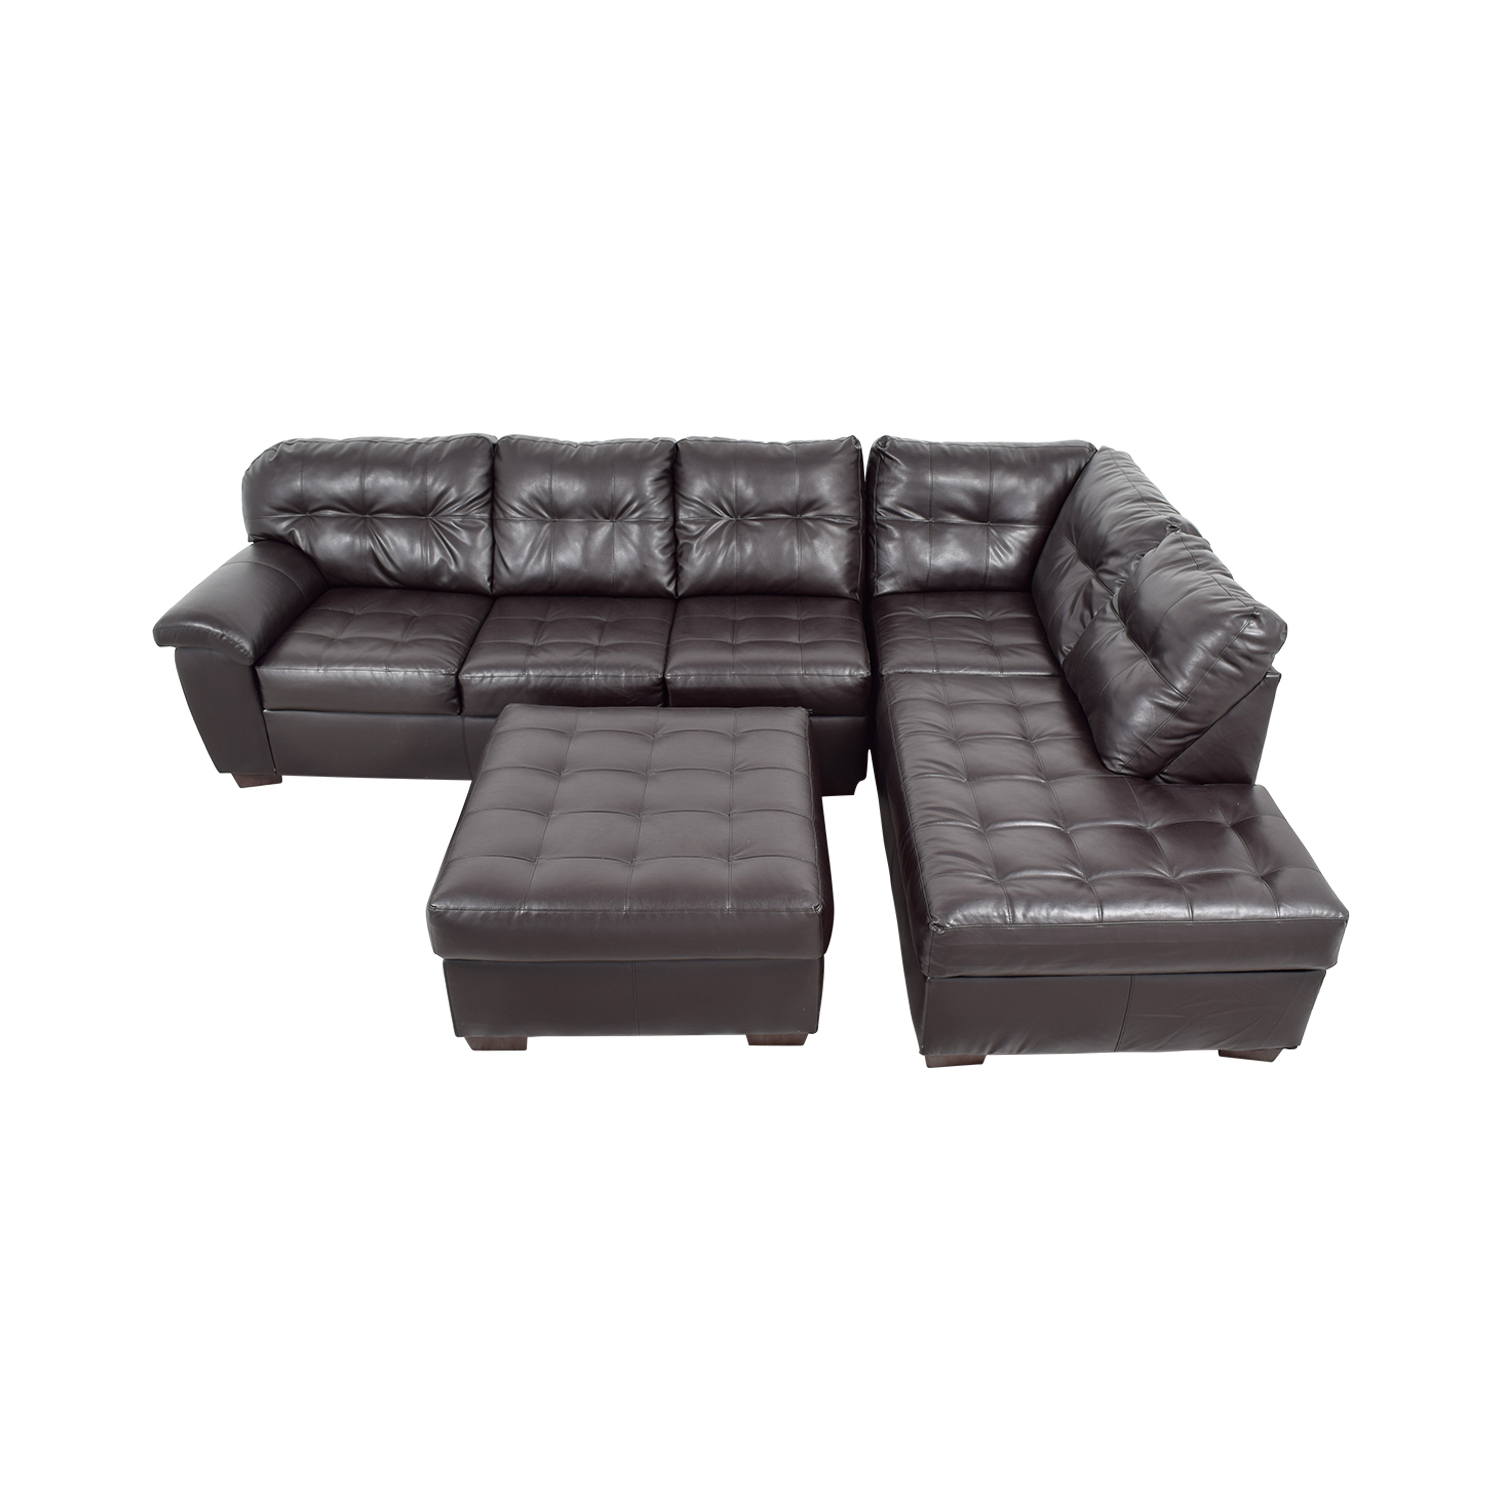 Simmons Brown Leather Sectional with Ottoman sale